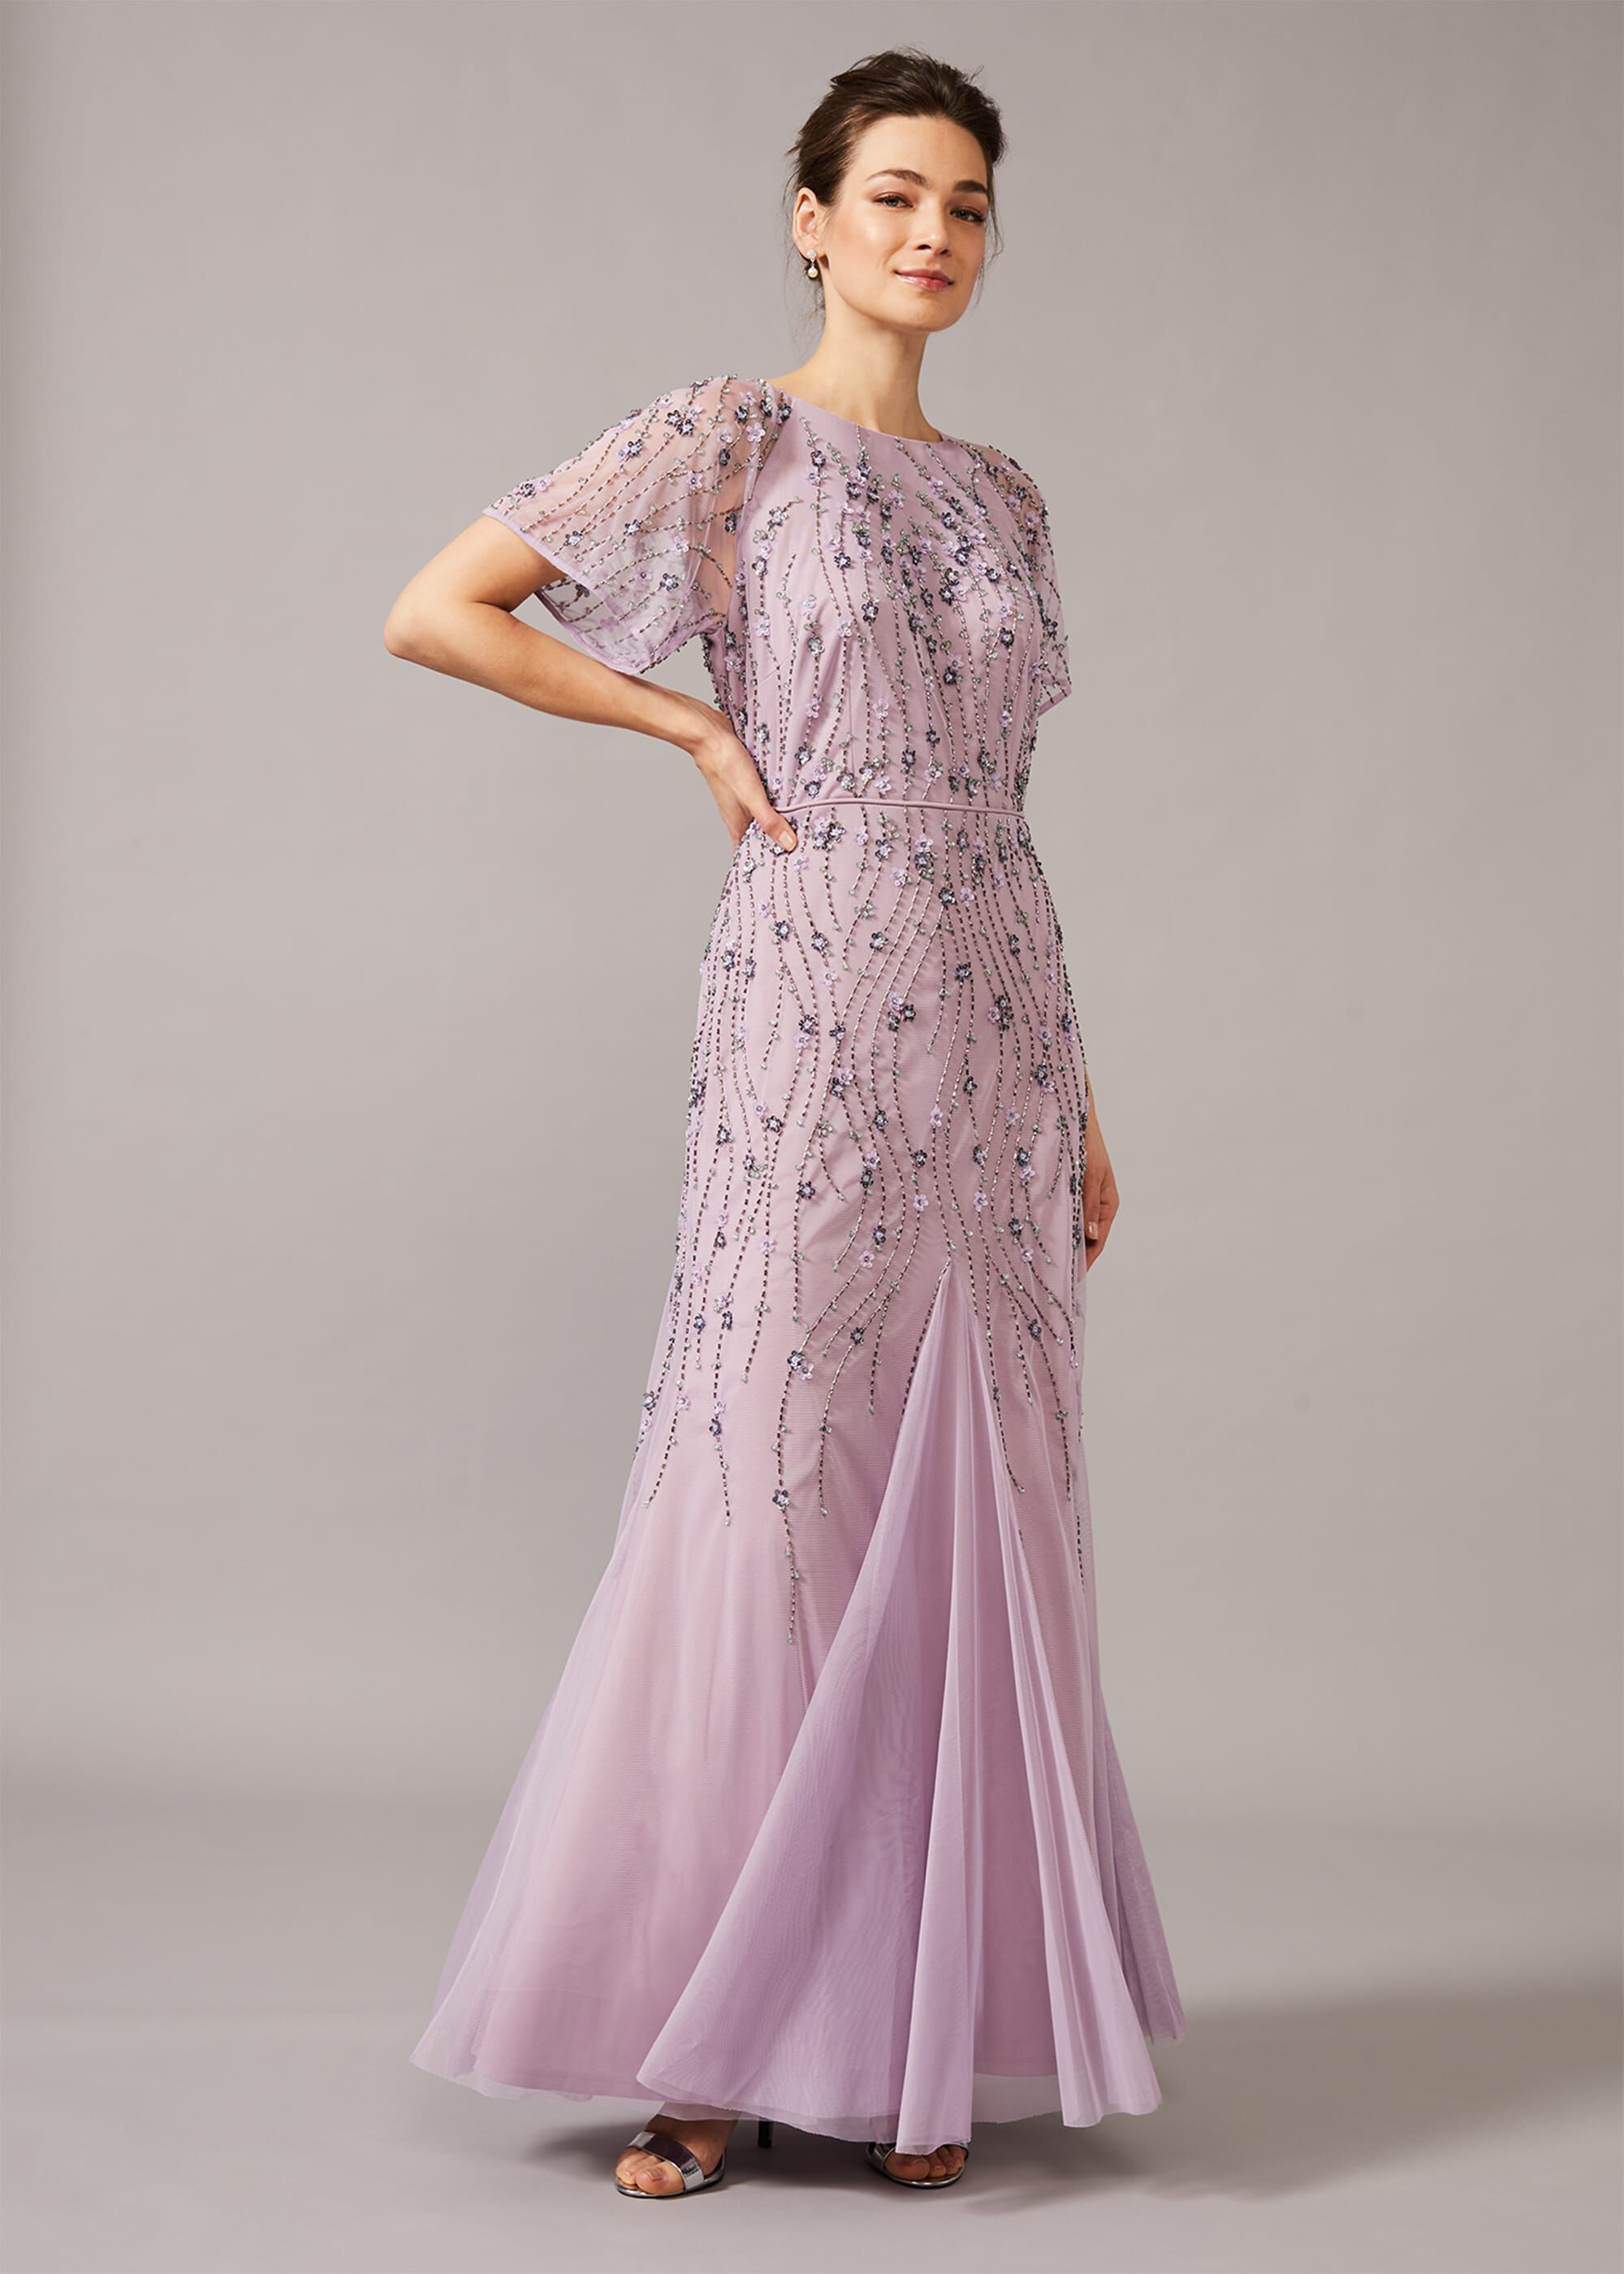 1920s Dresses UK | Flapper, Gatsby, Downton Abbey Dress Phase Eight Florisa Embellished Dress Purple Maxi Occasion Dress £325.00 AT vintagedancer.com